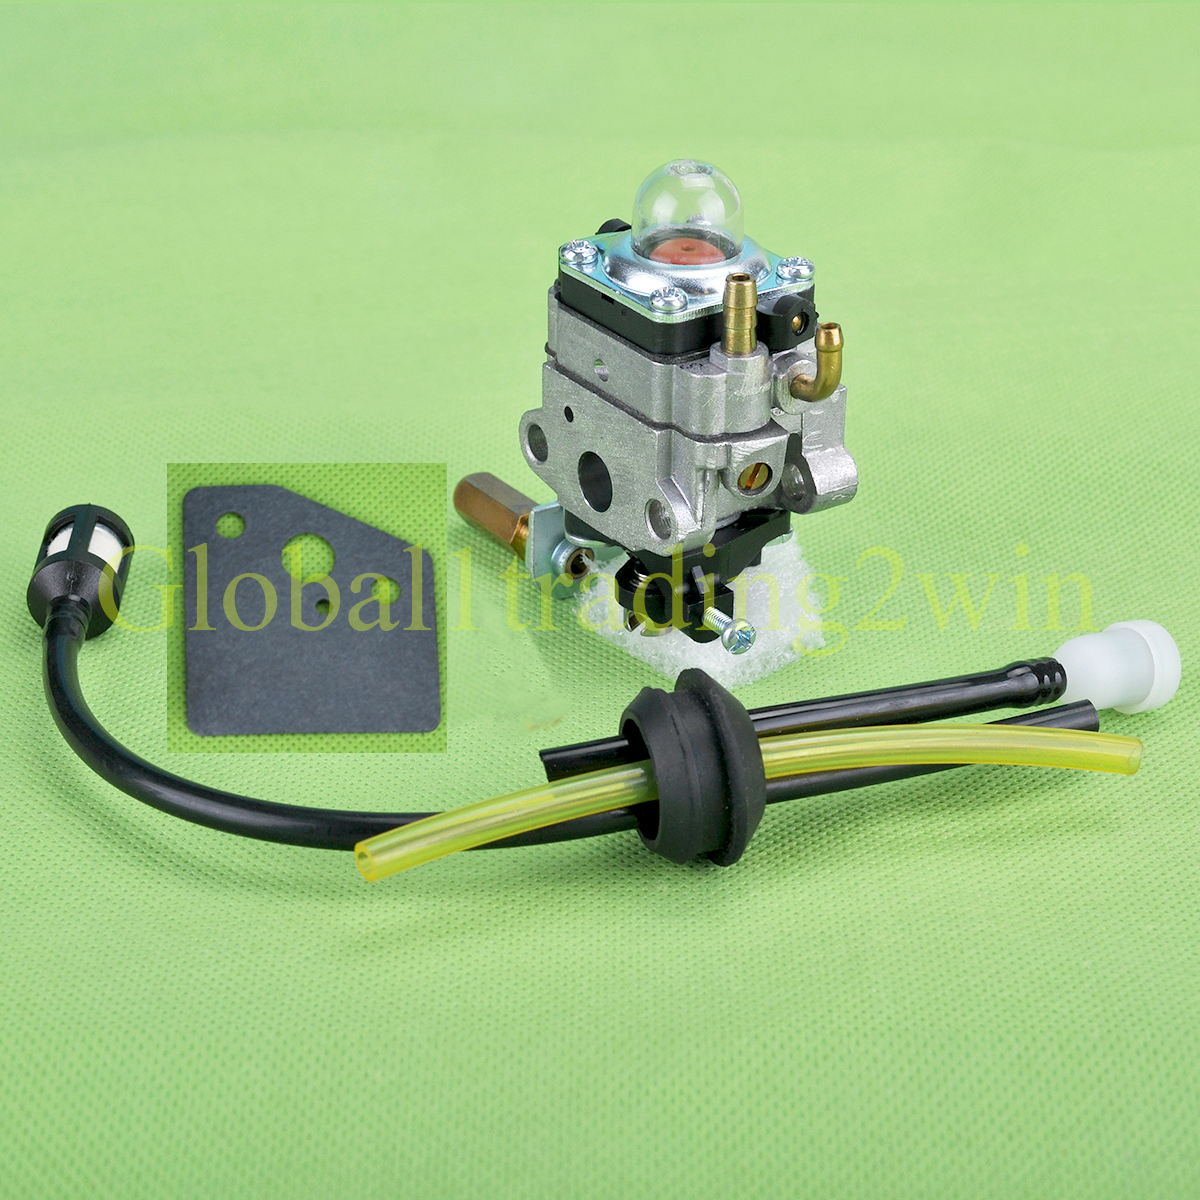 Carburetor Fuel Line Filter Kit Fit Honda Gx31 Gx22 Fg100 Trimmer Brush Cutter